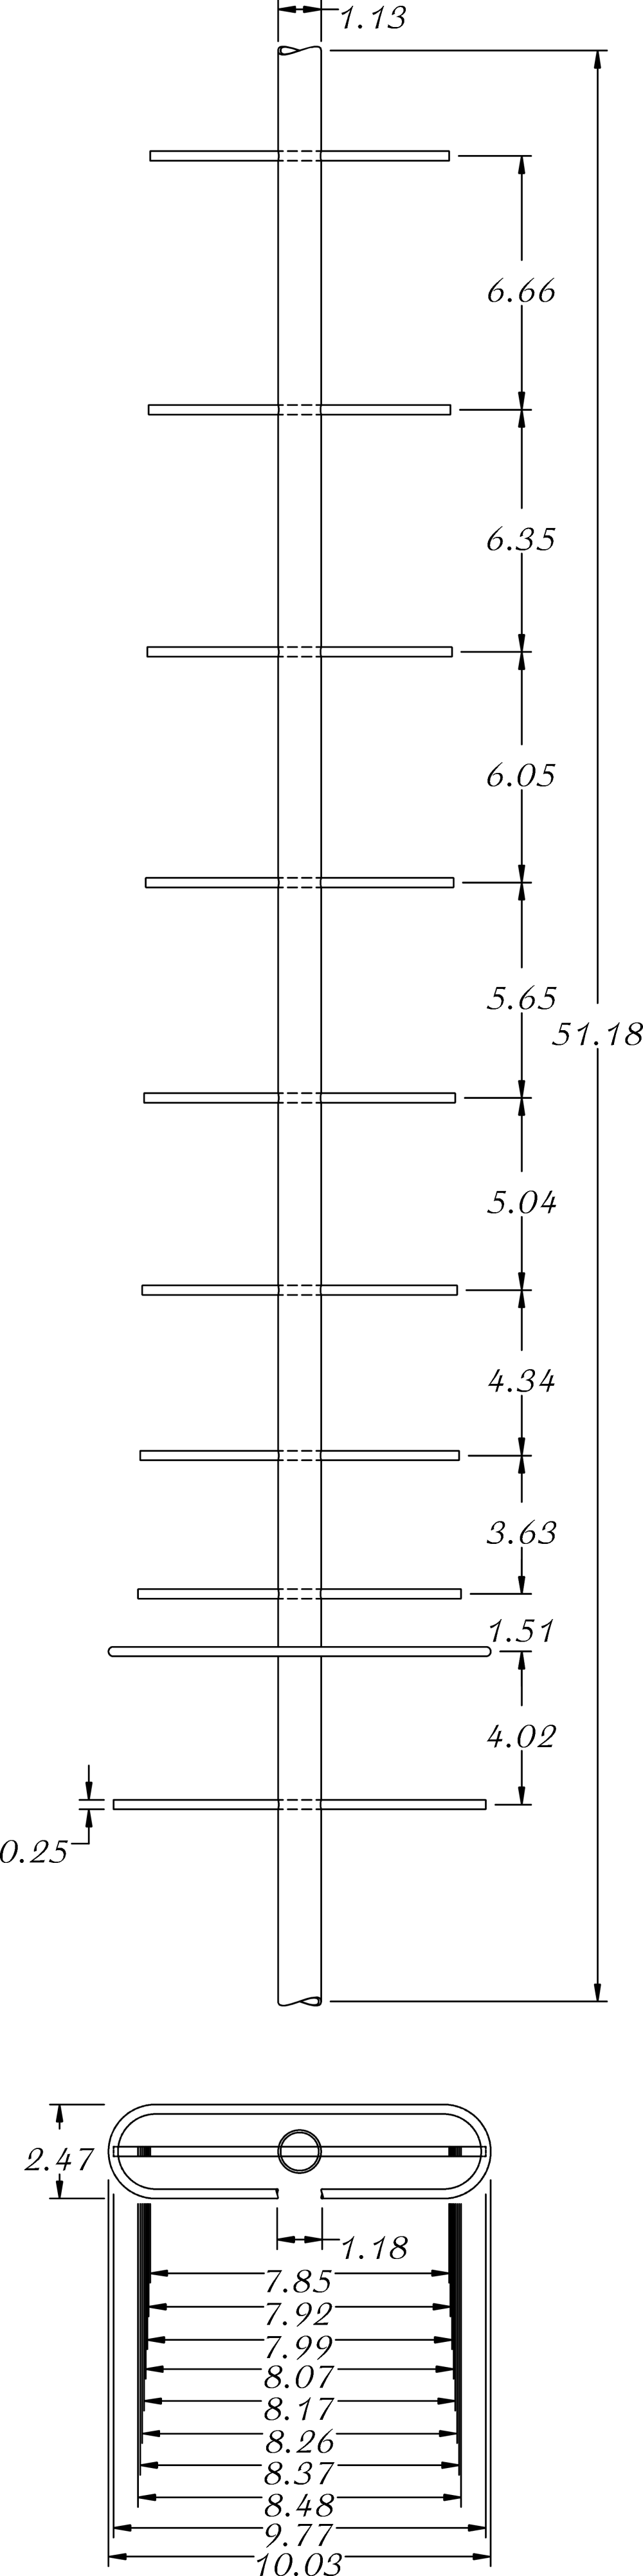 medium resolution of yagi 585mhz